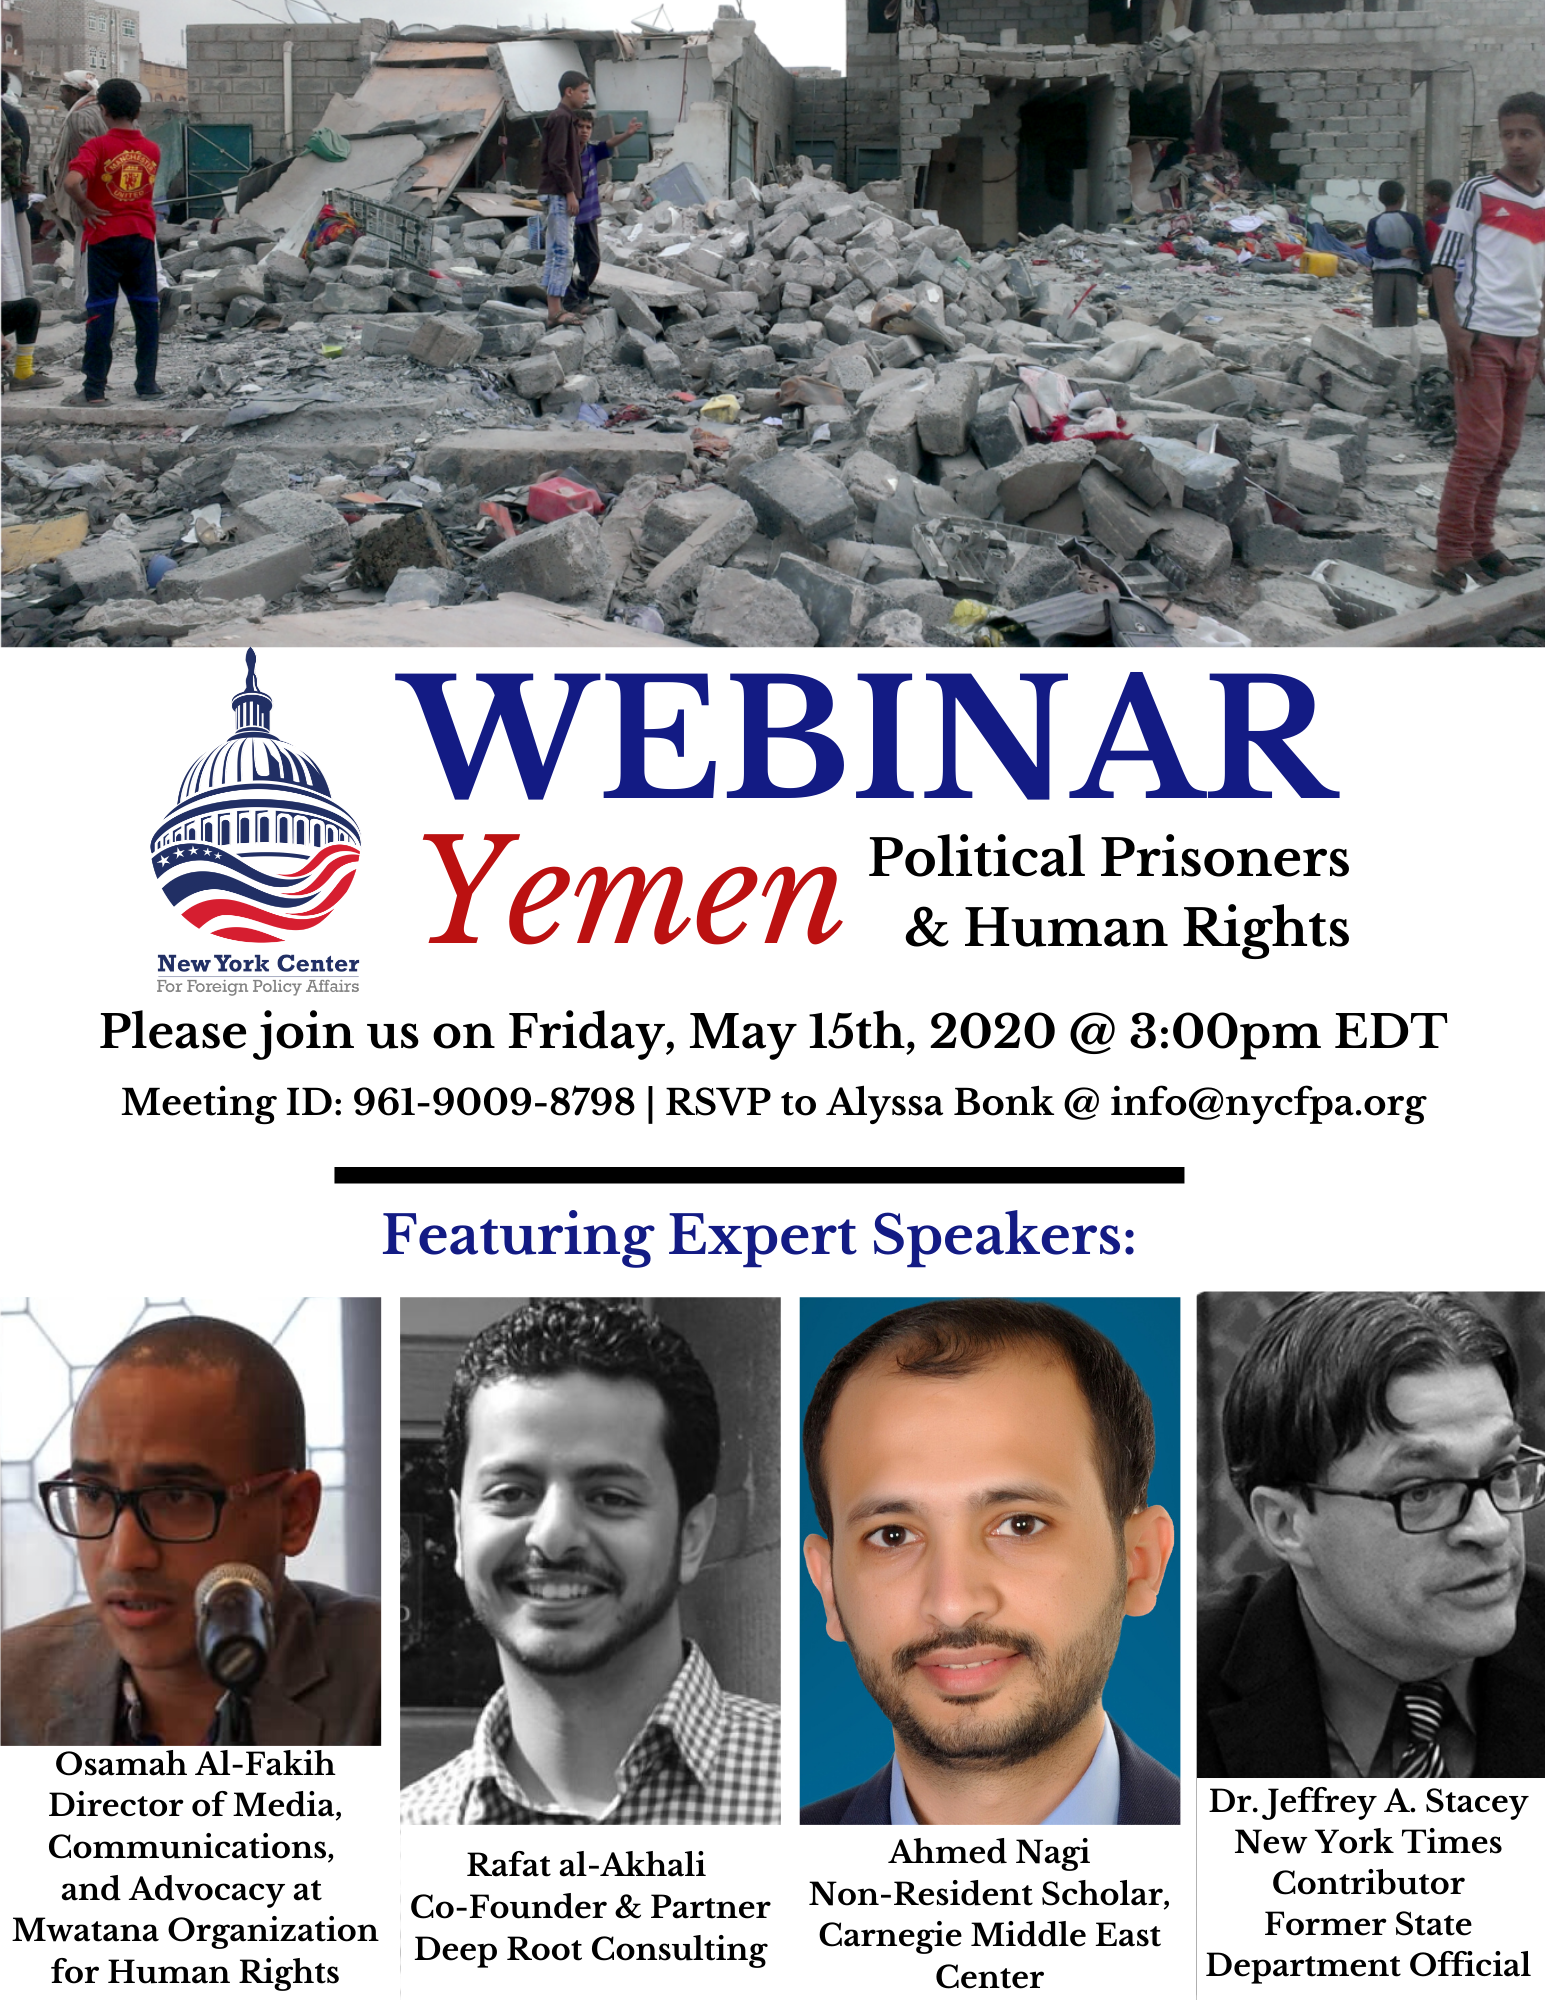 Yemen's Political Prisoners and Human Rights Webinar